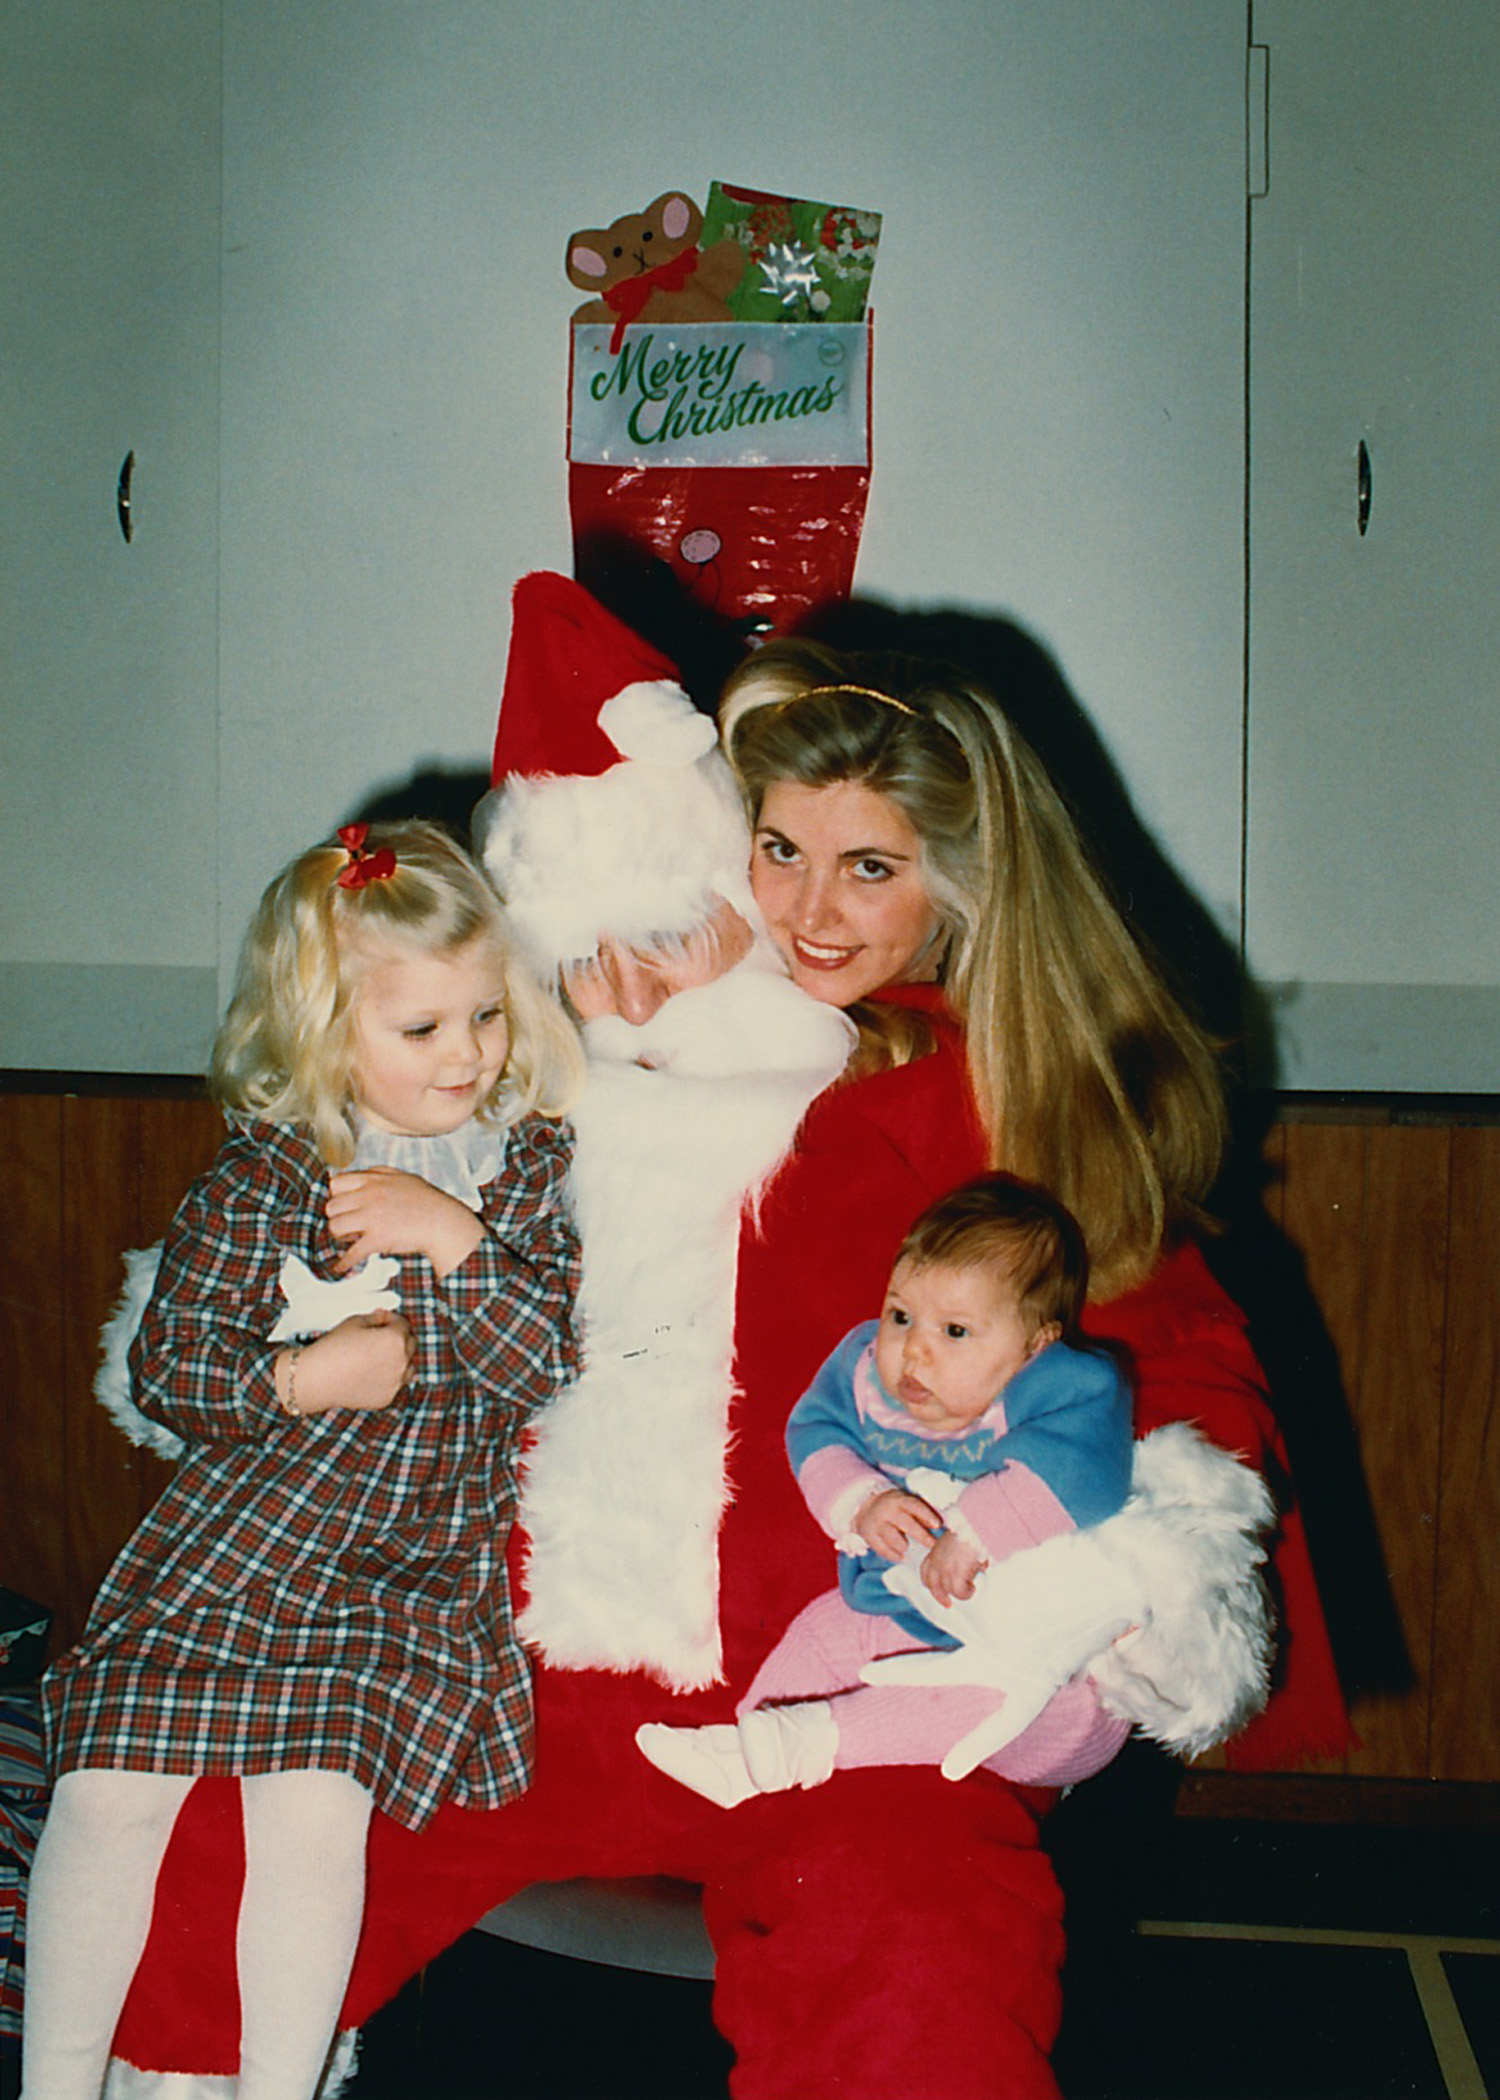 Me with my mom, sister and Santa (my dad).